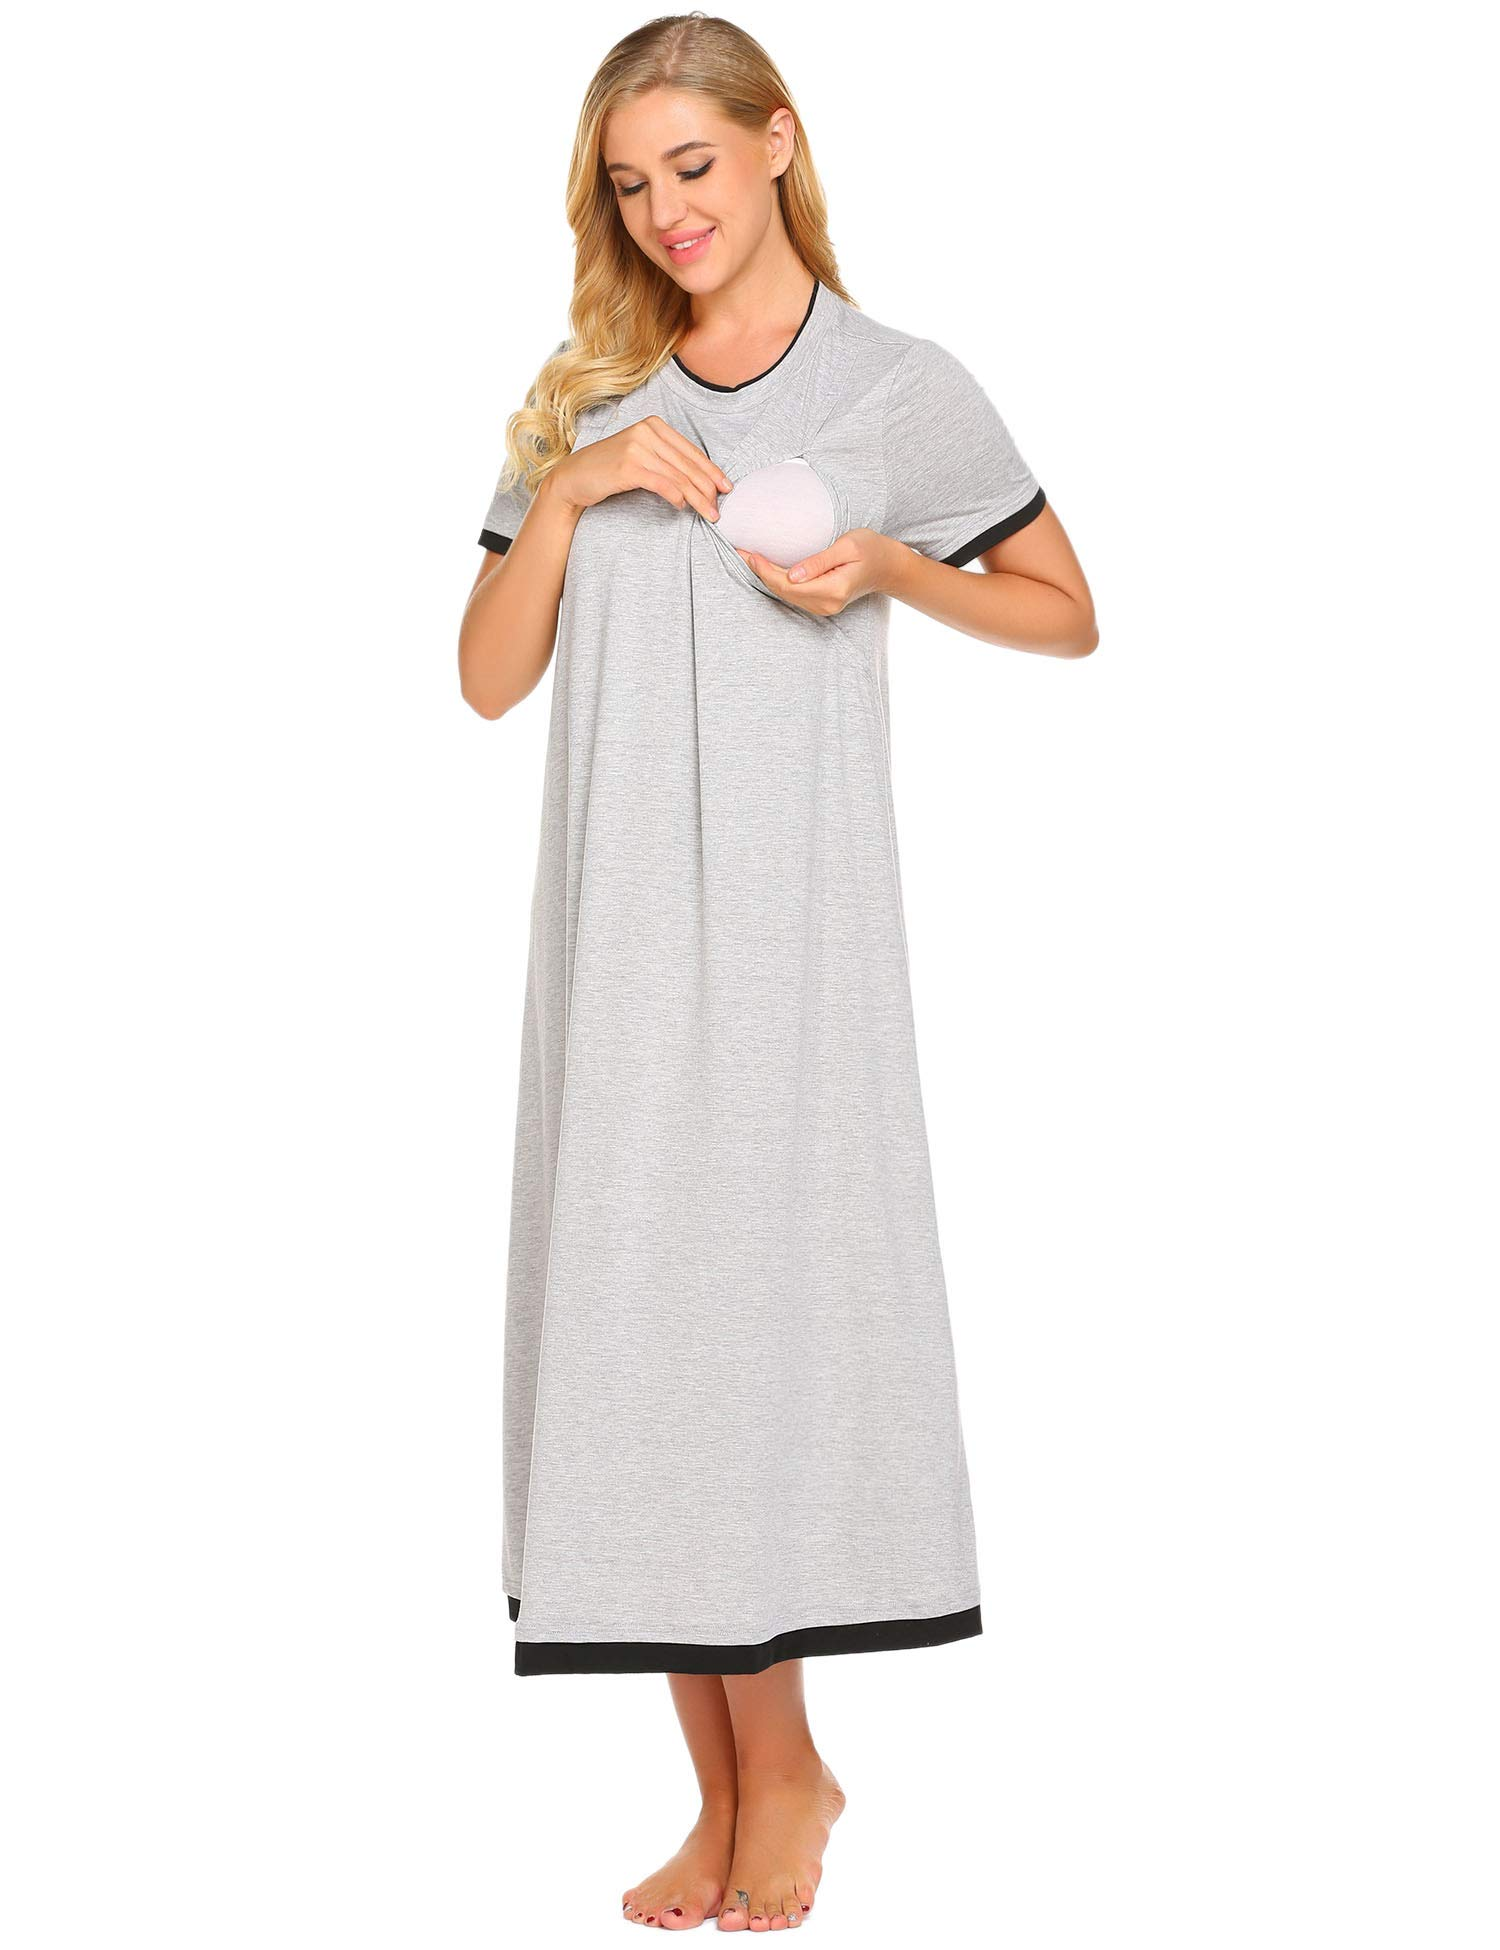 Ekouaer Womens Nursing Nightgown Maternity Sleepwear for Breastfeeding Labor and Delivery Gown